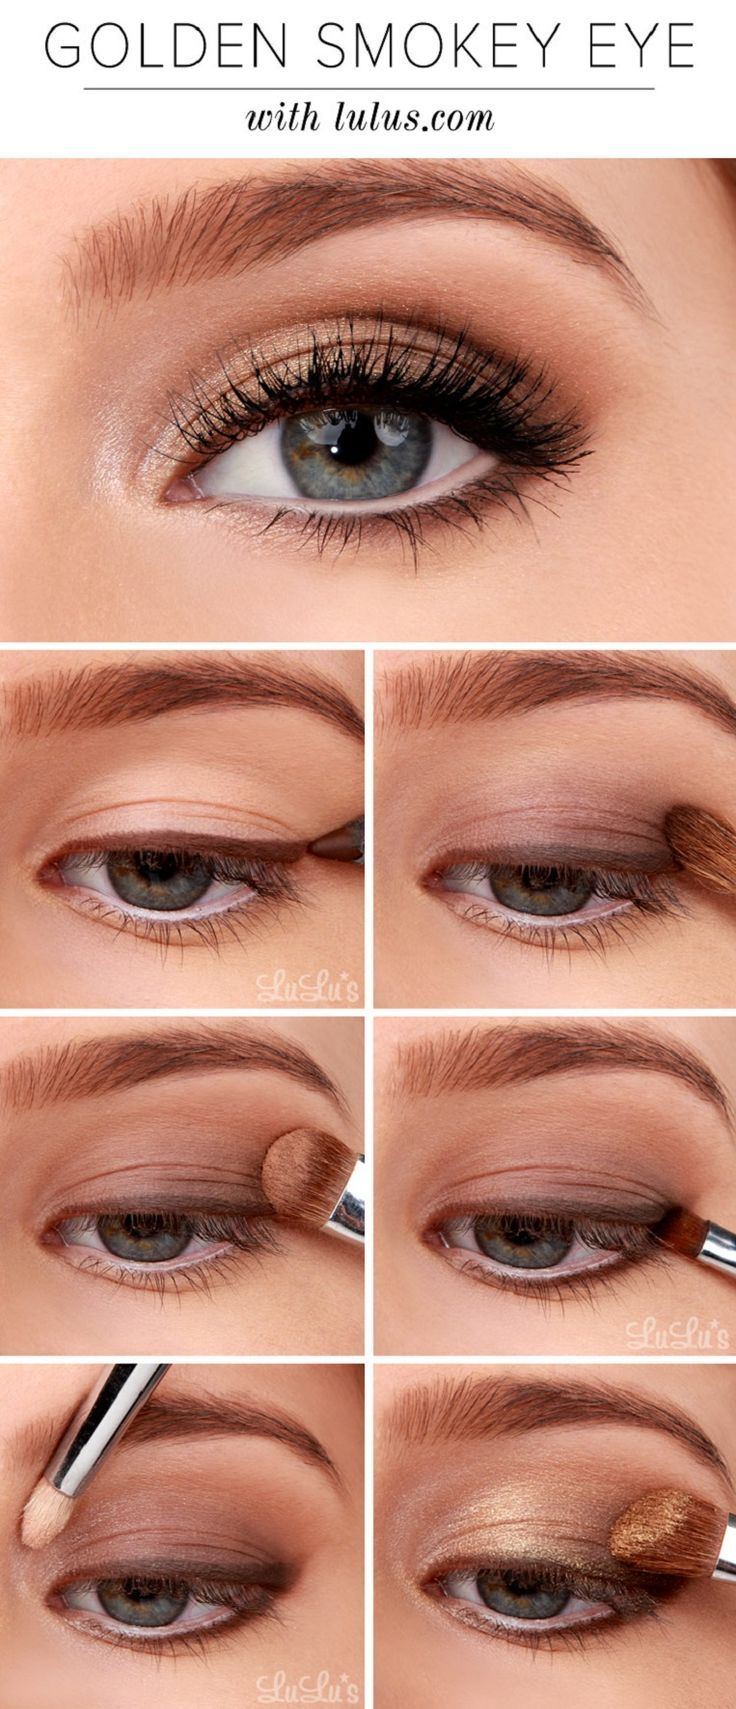 12 best beauty tutorials for fall 2014 gleamitup hair and make golden smokey eye tutorial 10 brown eyeshadow tutorials for seductive eyes gleamitup this is pretty and not so dark as most smokey eyes baditri Images